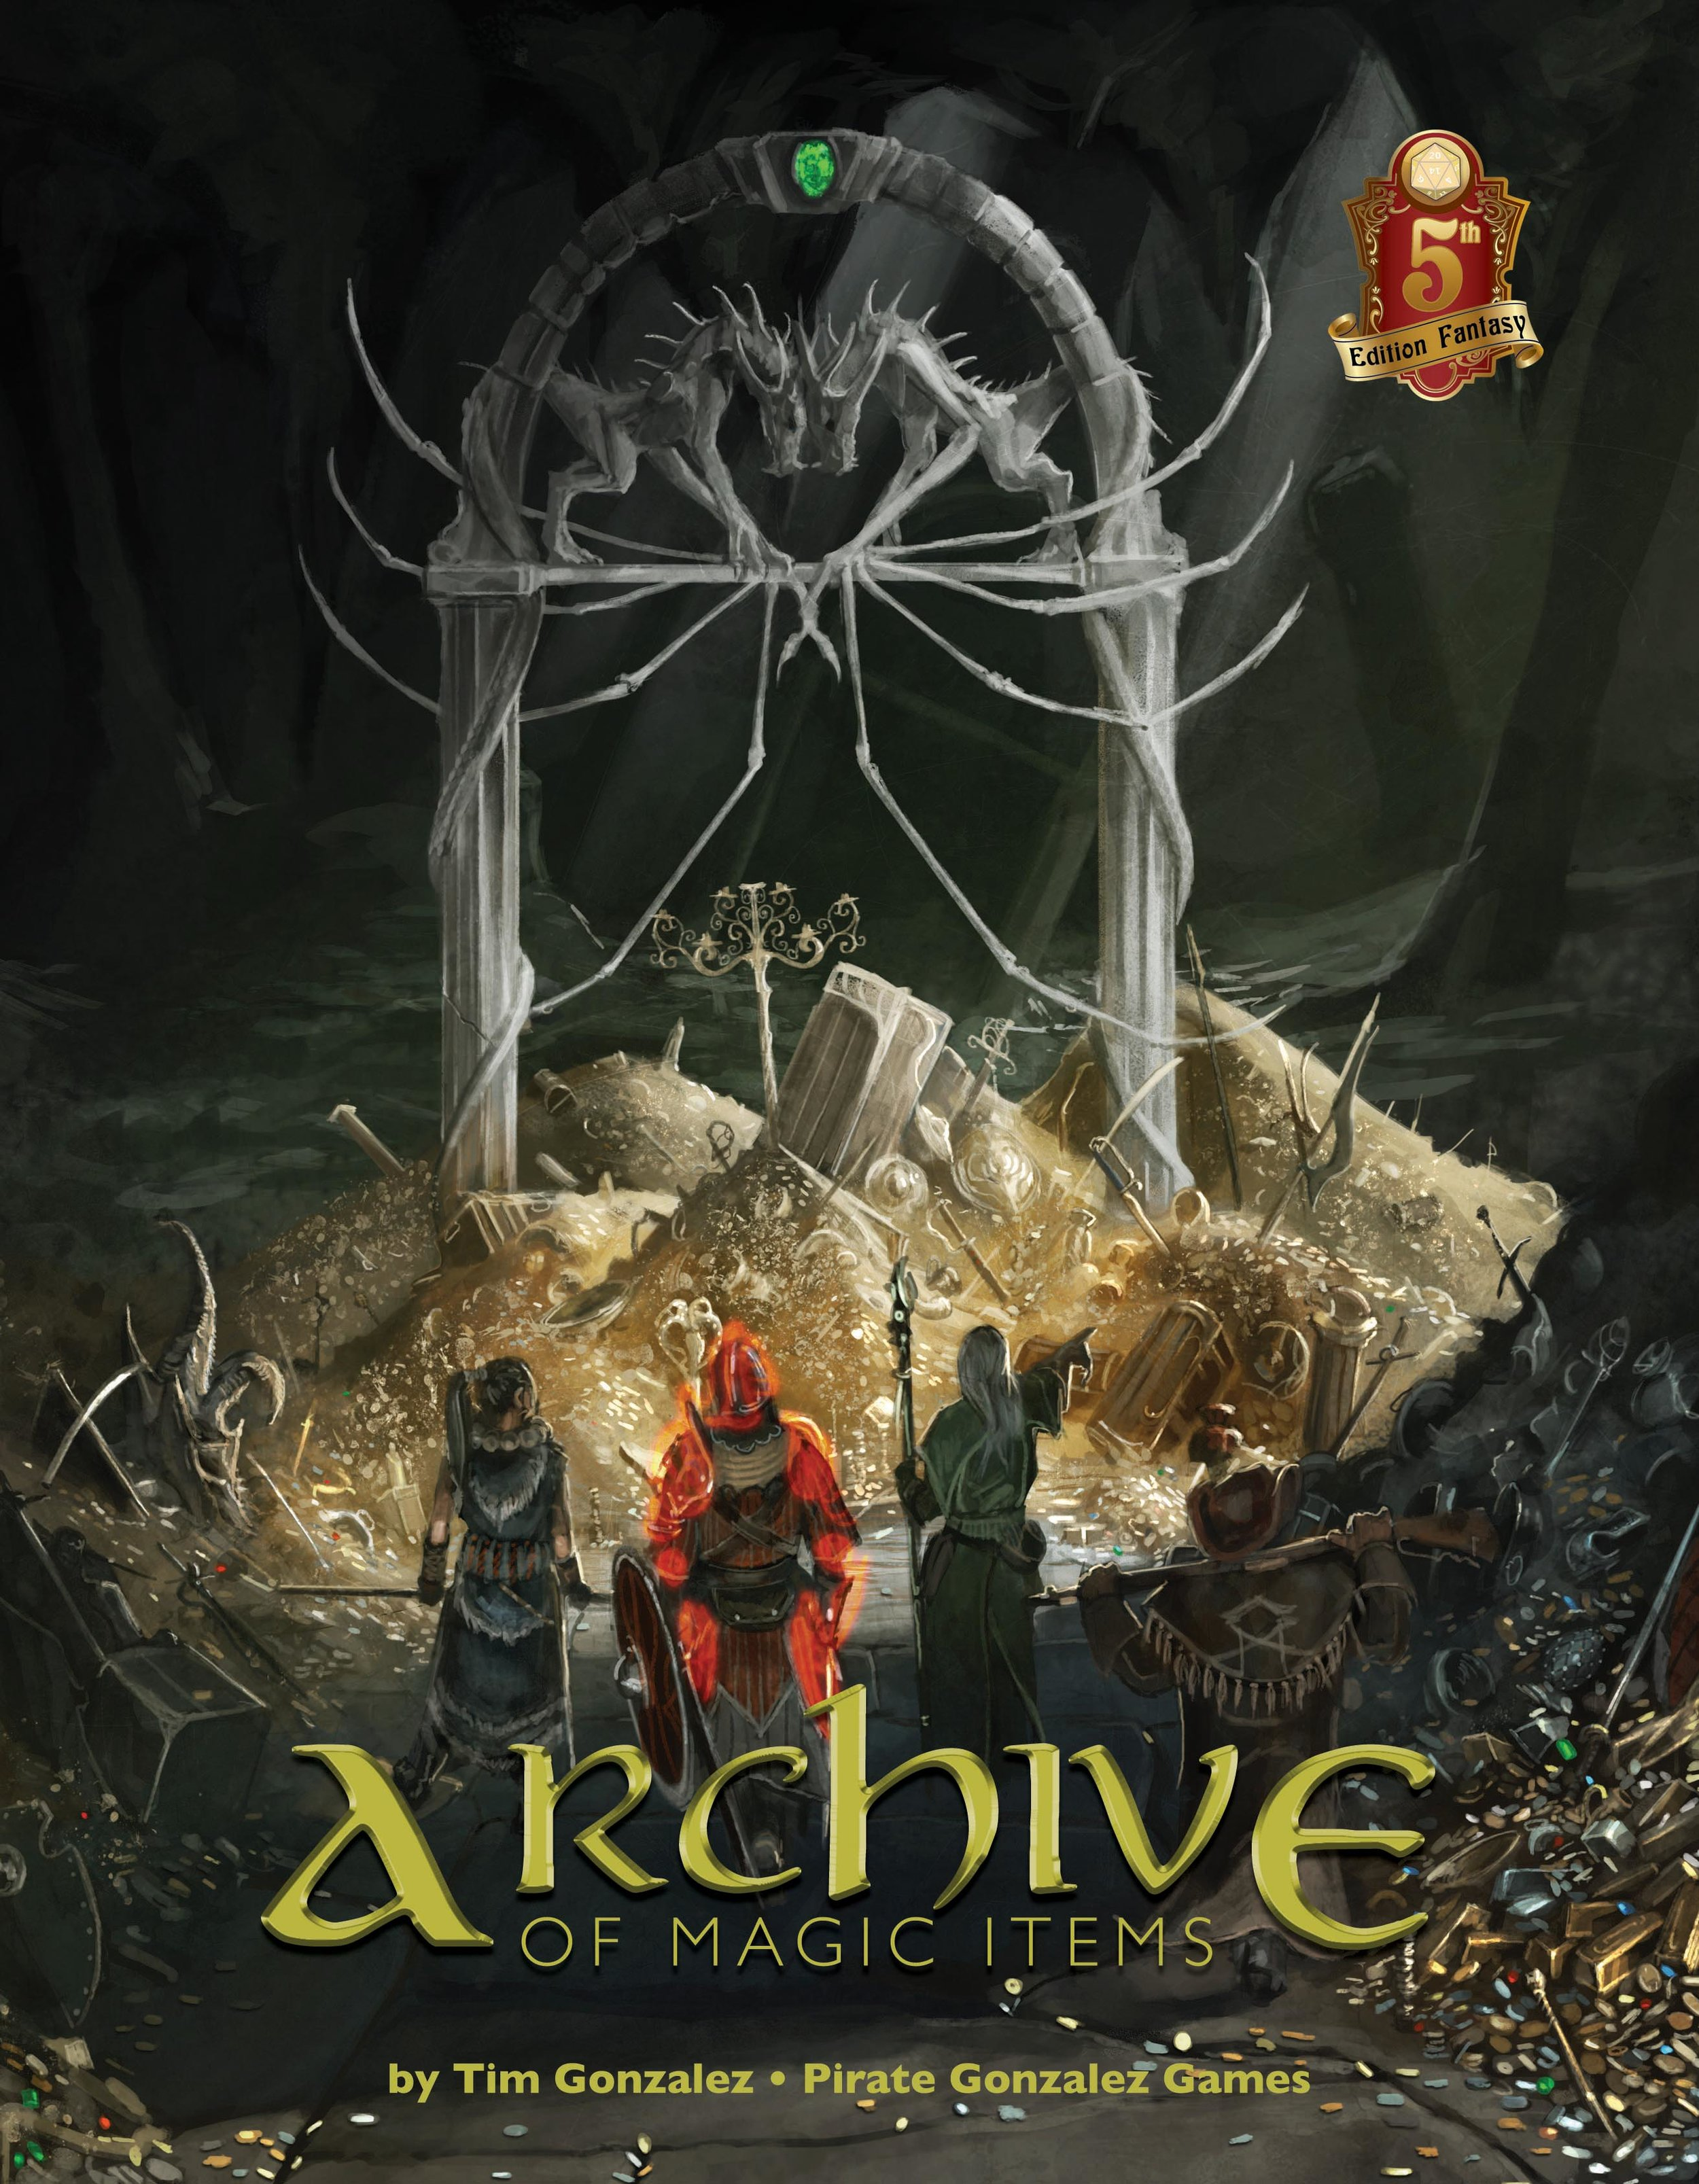 Kickstarter is Live: The Archive of Magic Items! — Pirate